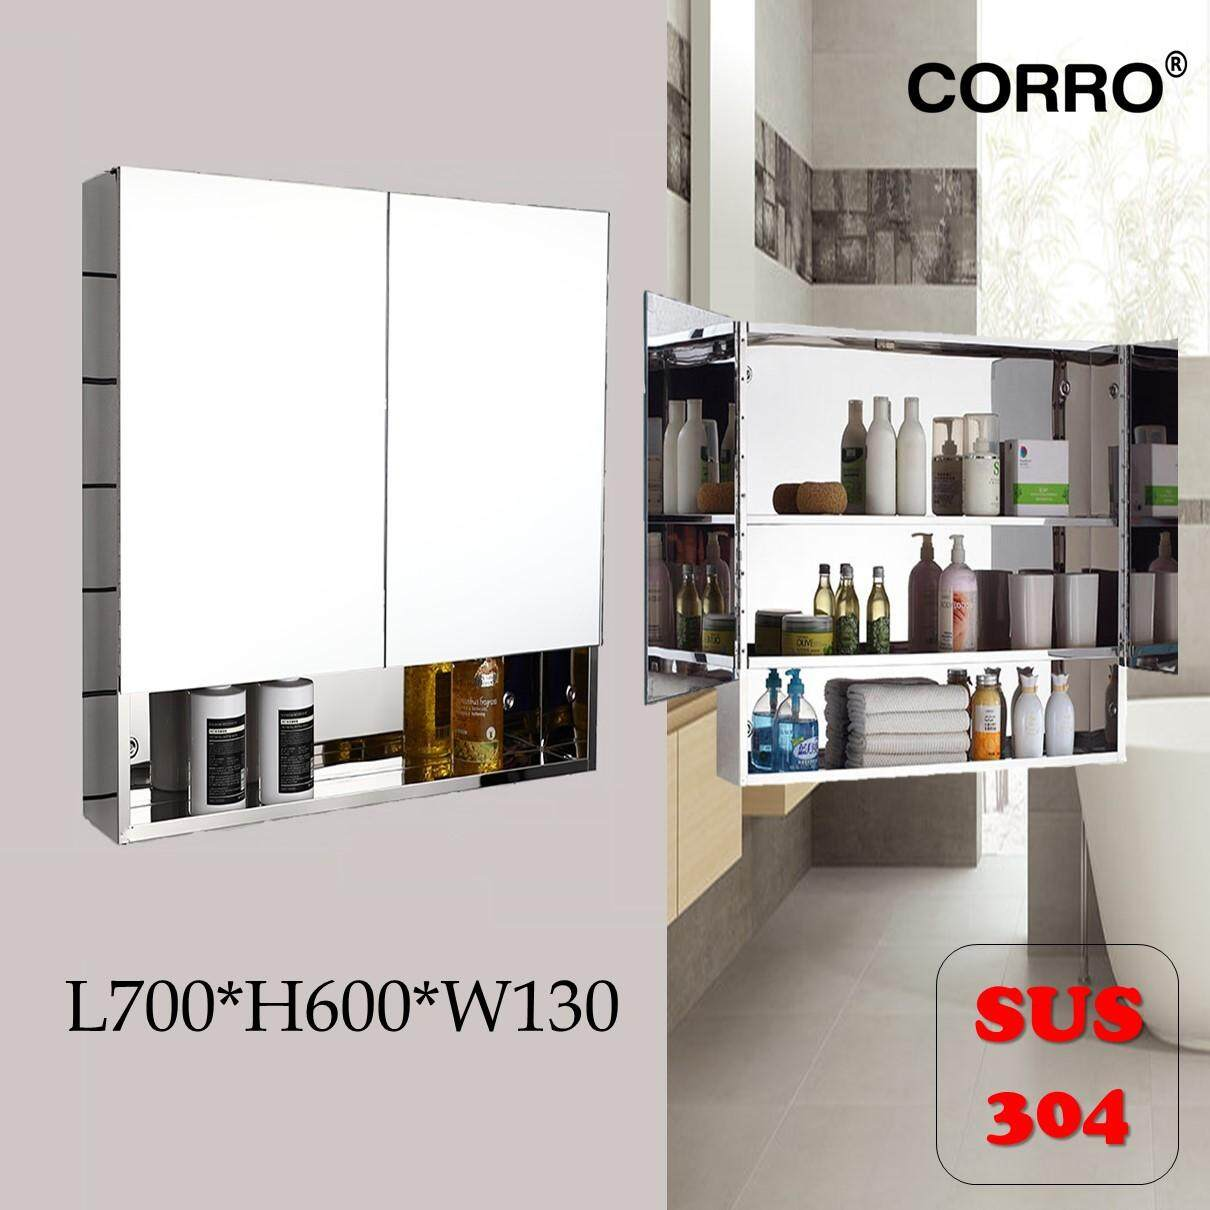 CORRO SUS304 100% Stainless Steel Bathroom Mirror Cabinet - L700*H600*W130